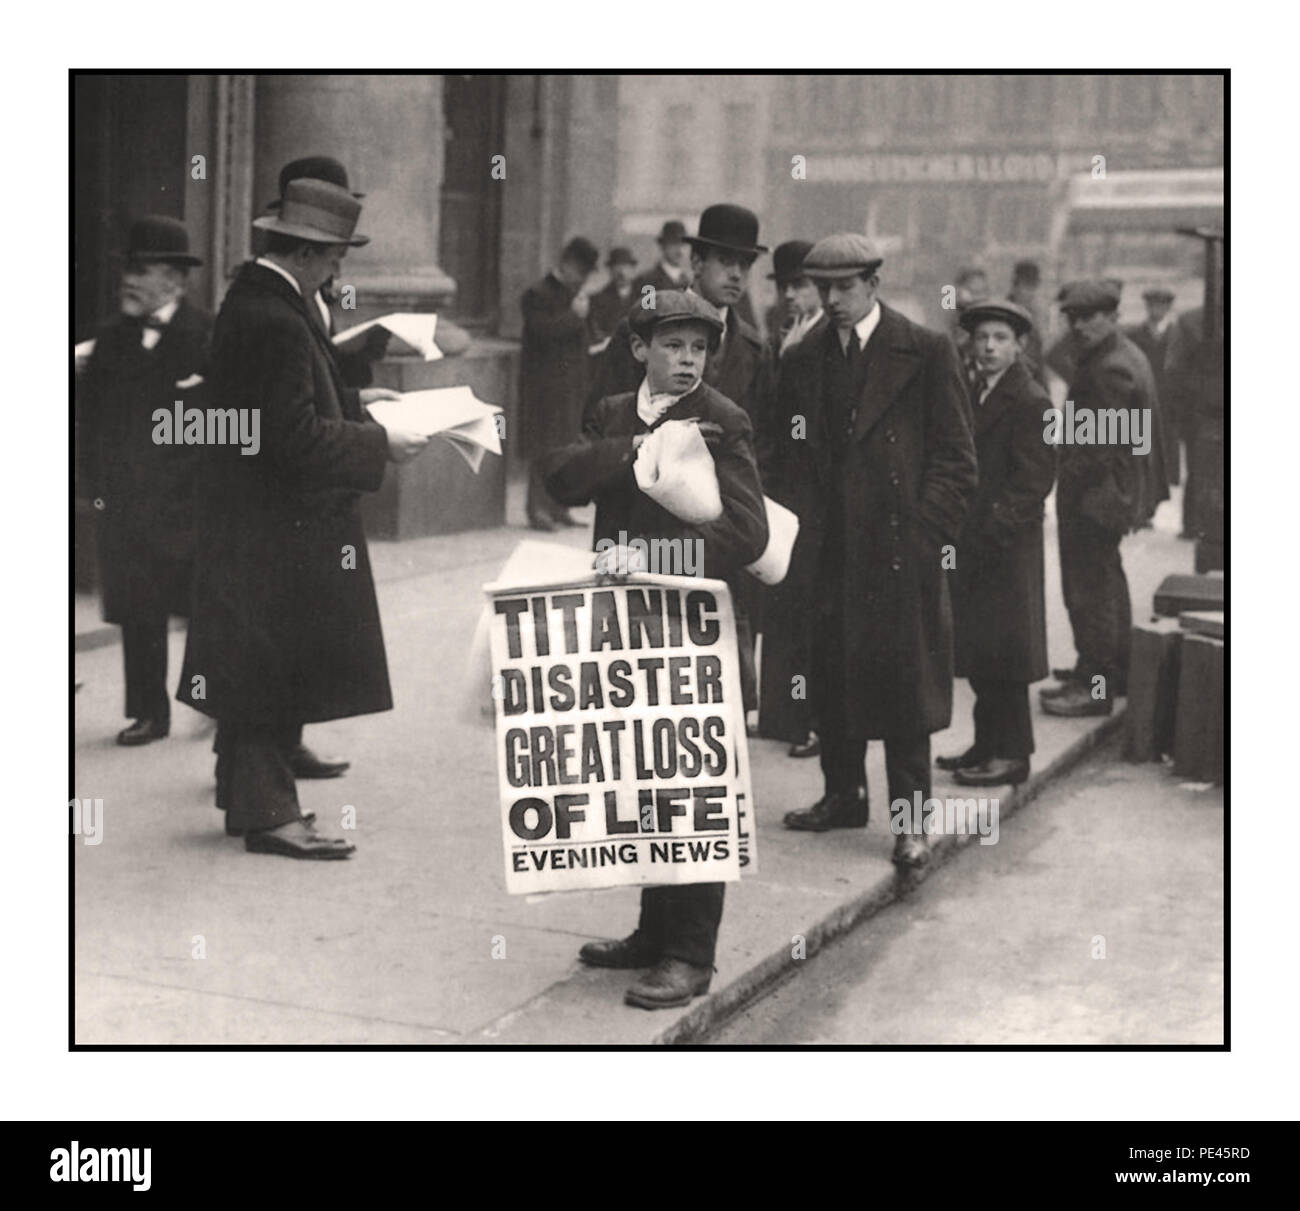 RMS Titanic disaster headline news, newspaper newsboy seller with banner declaring 'TITANIC DISASTER GREAT LOSS OF LIFE' Evening News White Star Line Cockspur Street  London UK - Stock Image